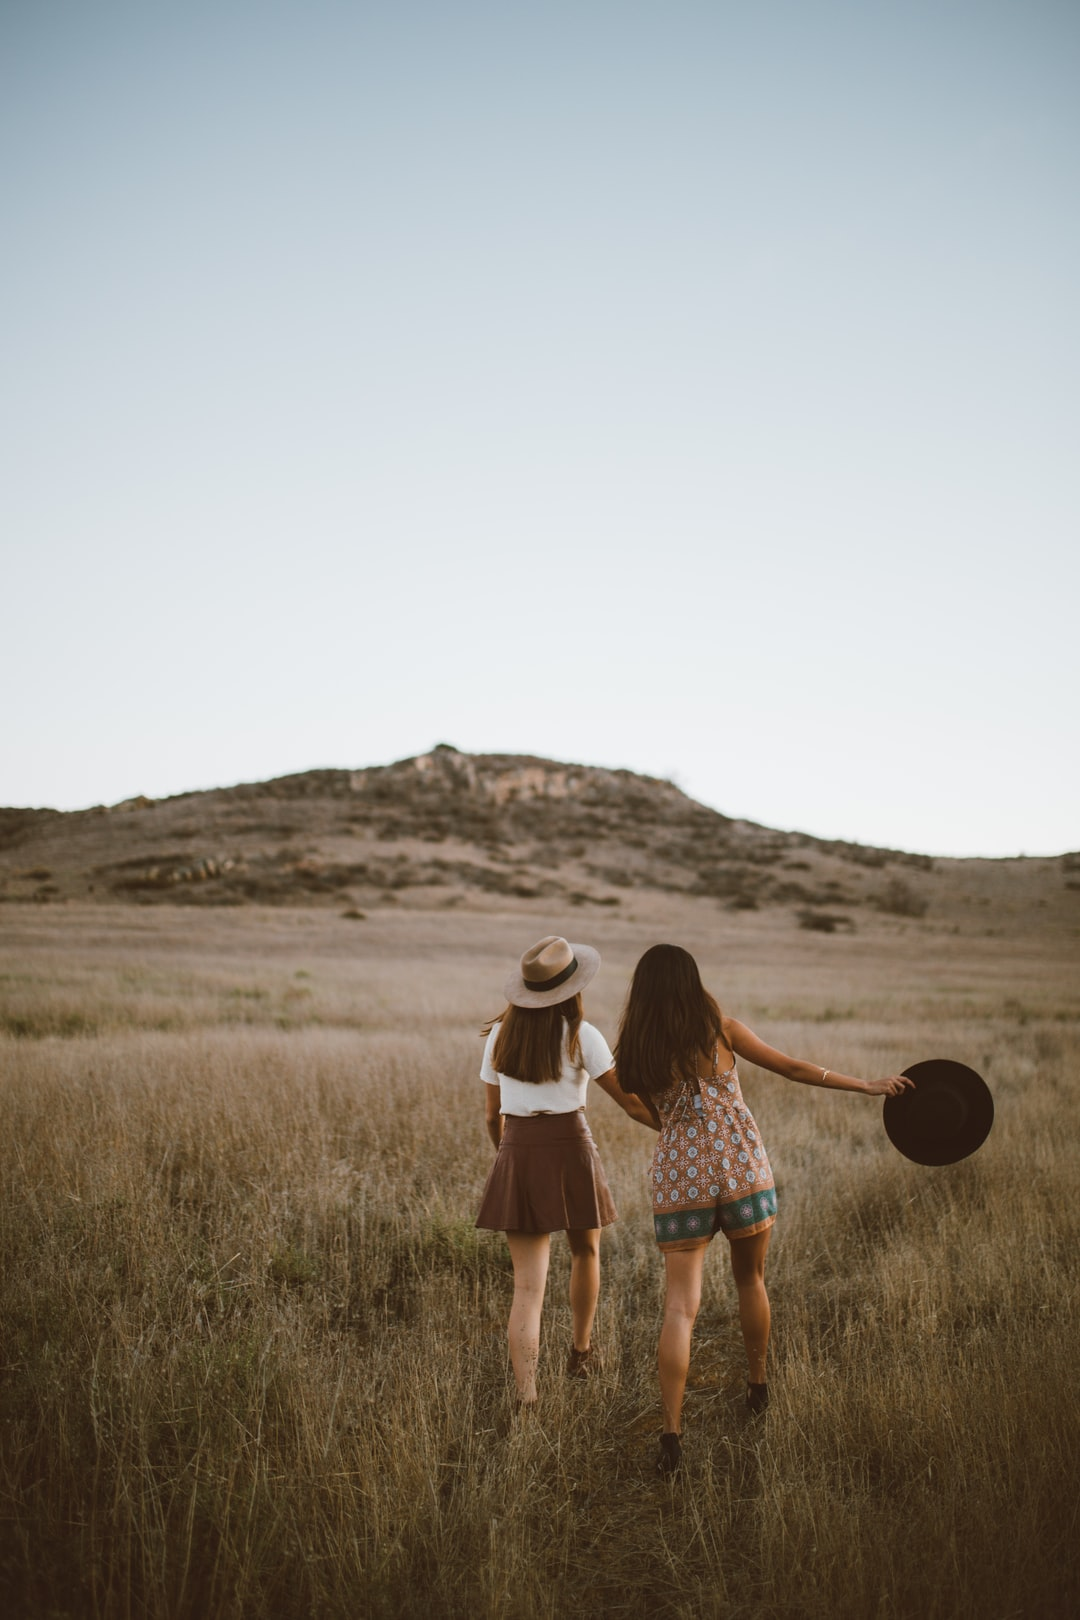 How to Be a Better Friend Through Tough Times